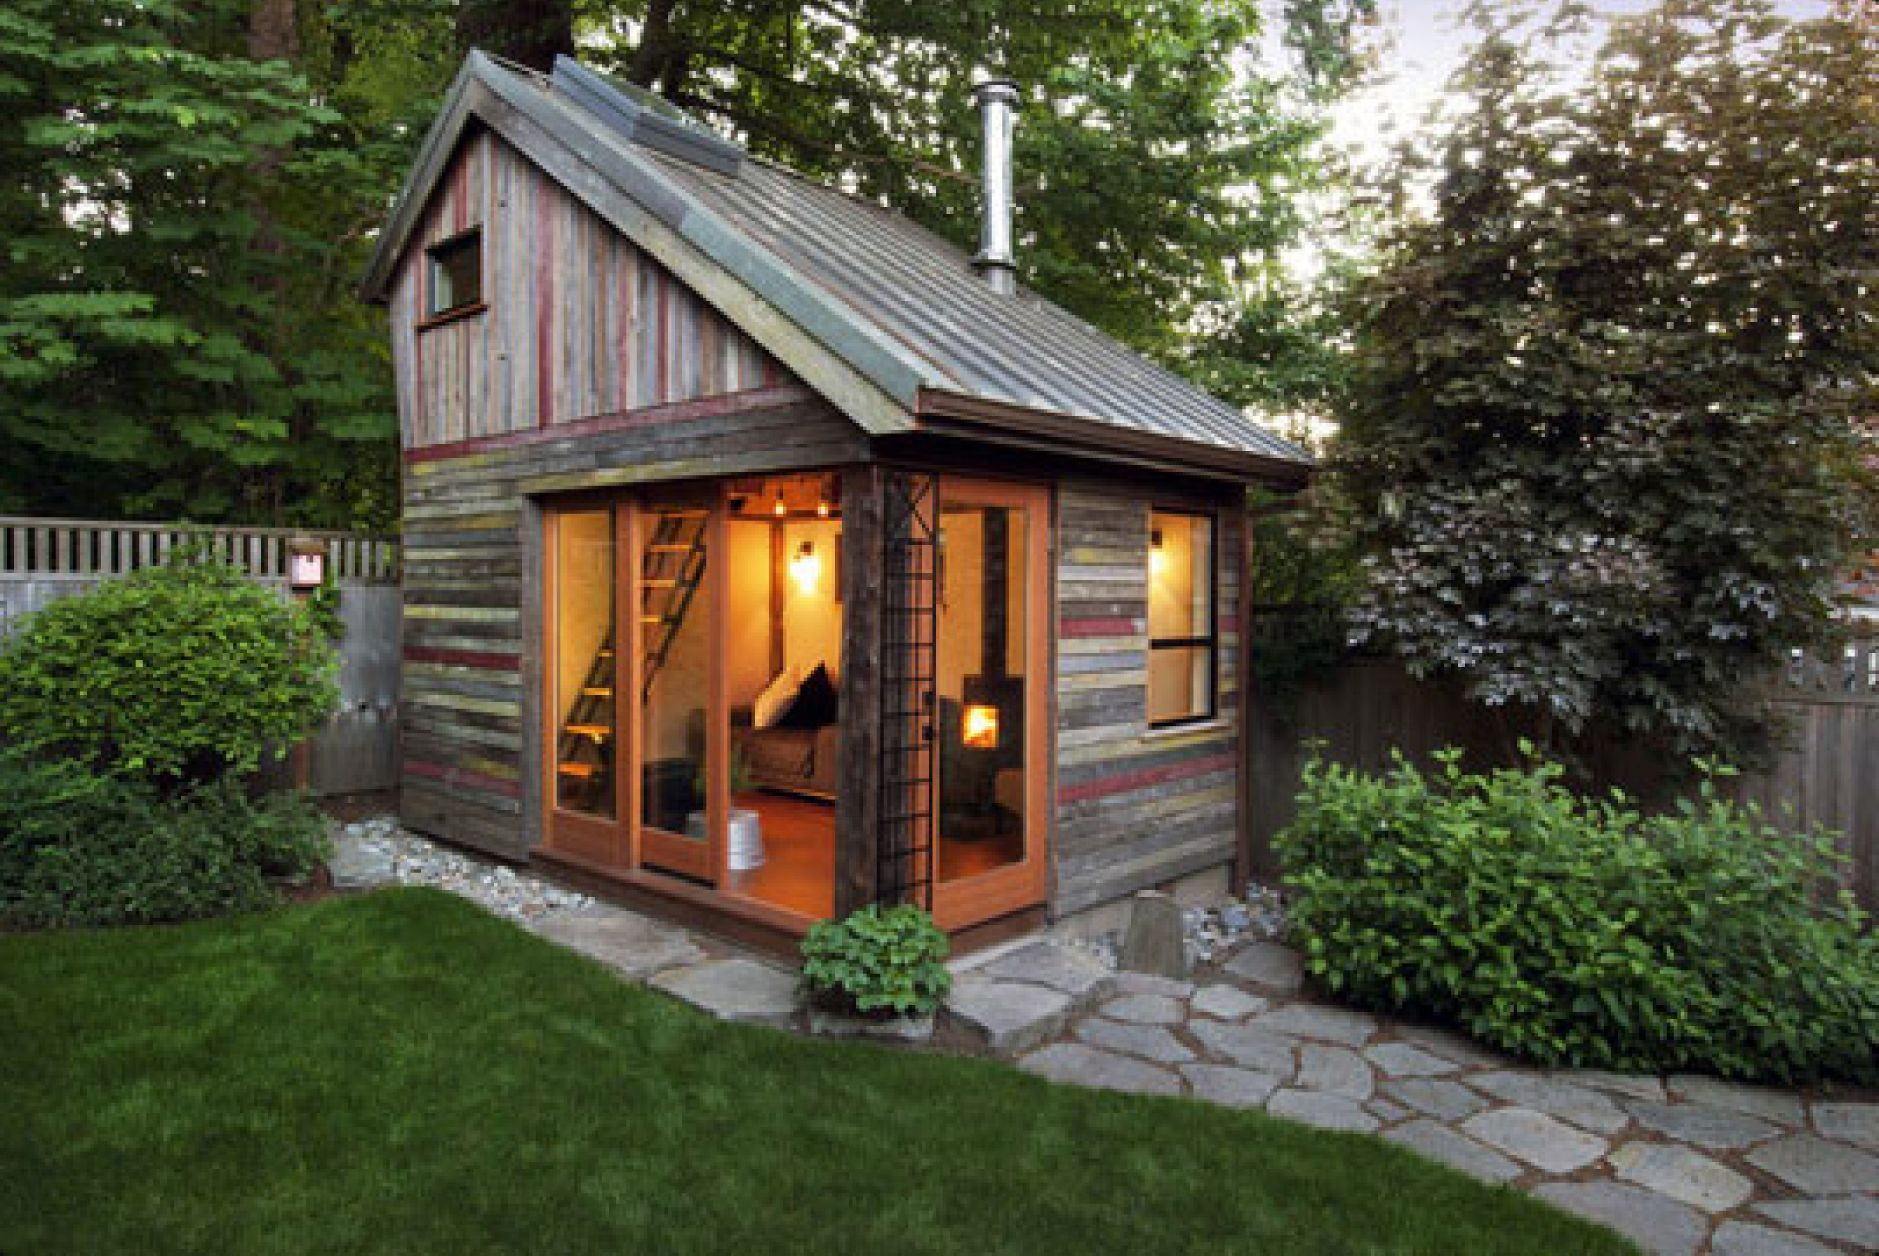 Storage Shed Landscaping Ideas Brick Plan Top Houseackyard Garden Design With Small Modern Wooden Sheds And Slid Backyard Sheds Small Patio Design Patio Design